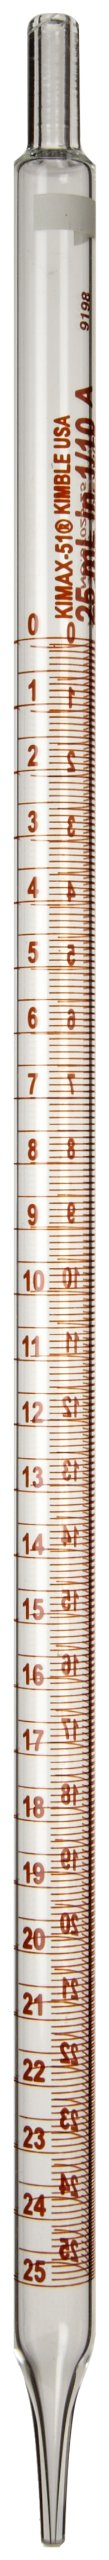 Kimble 37025-25 Glass Serialized and Certified Mohr Style Pipet, 25mL Volume (Case of 6)